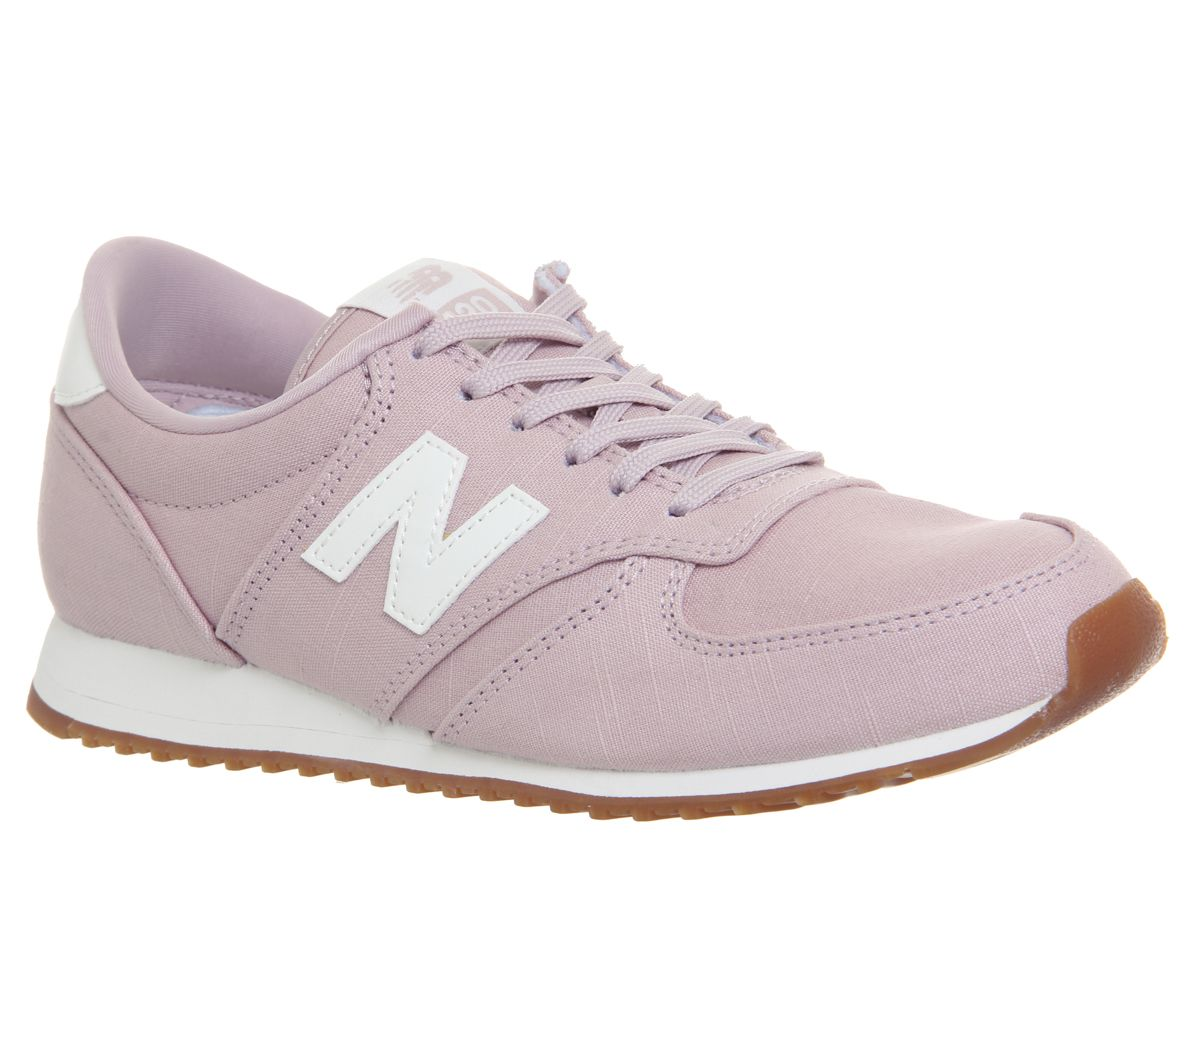 8dab372bbbff3 New Balance 420 Trainers Faded Rose - Hers trainers